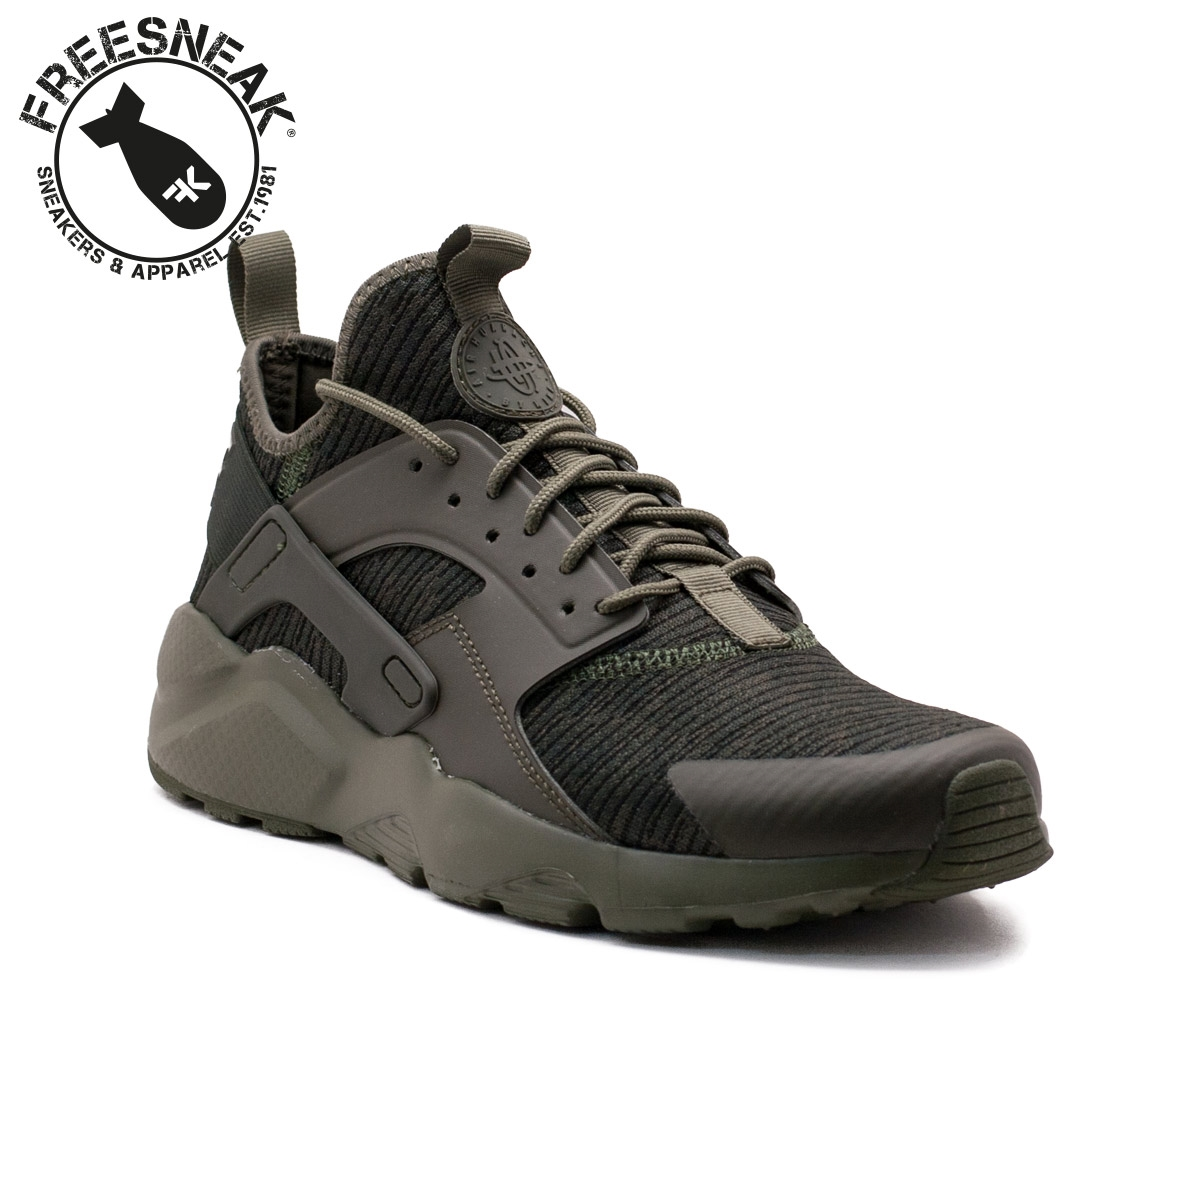 timeless design 236f7 029fc Nike | Air Huarache Run Ultra SE Verde Militare | 875841-303